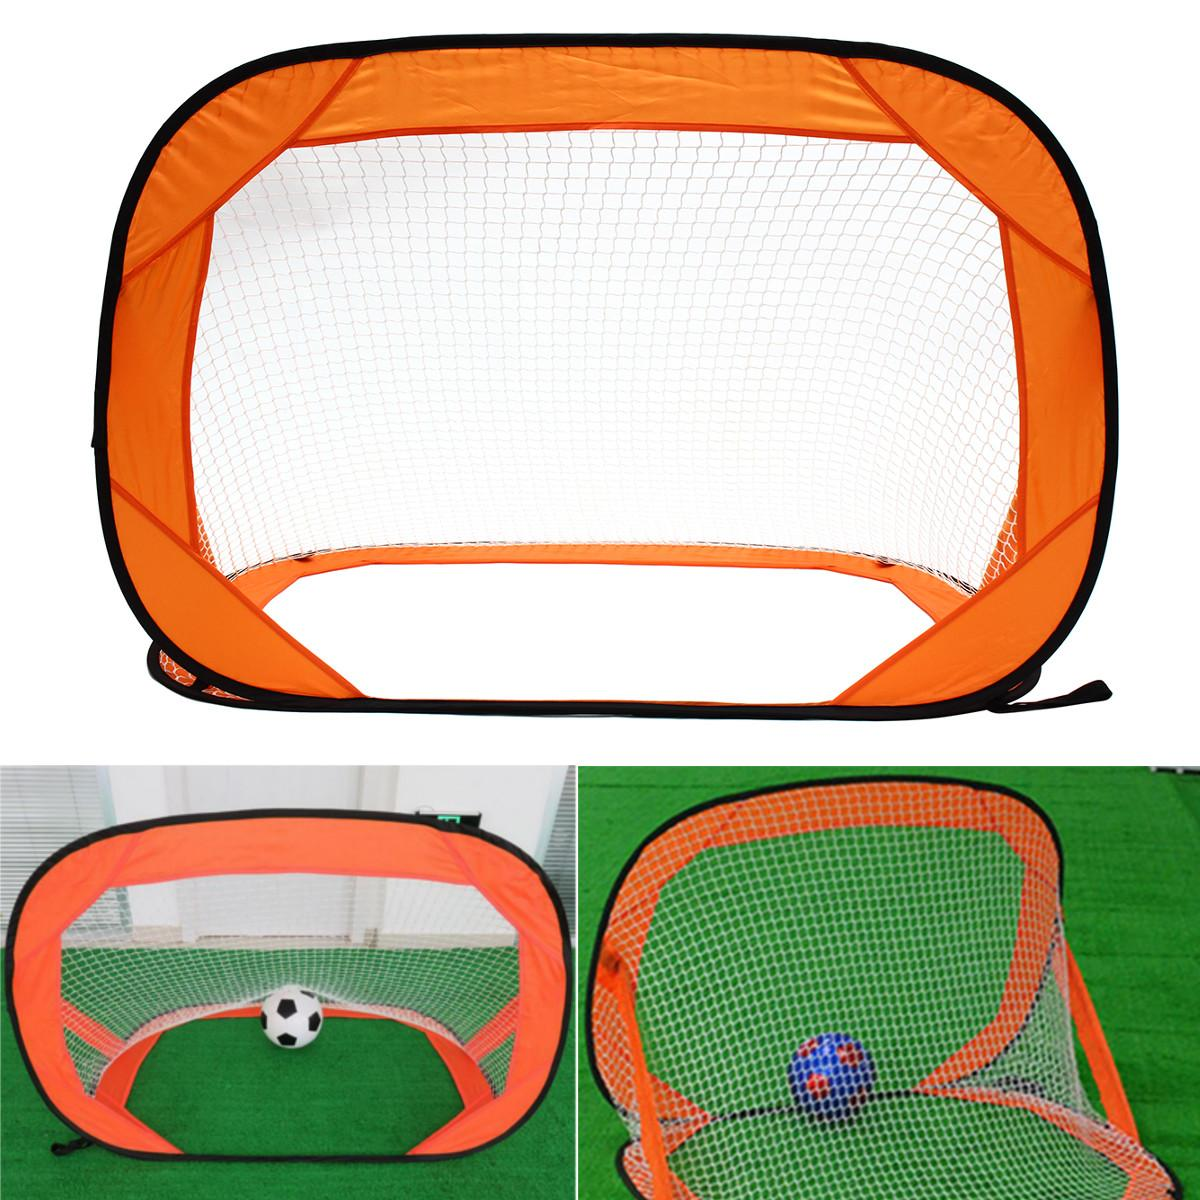 2PCS Mini Pop Up Soccer Goals Set Portable Foldable Football Net Kids Outdoor Team Sports Training Accessories 85X85X120cm